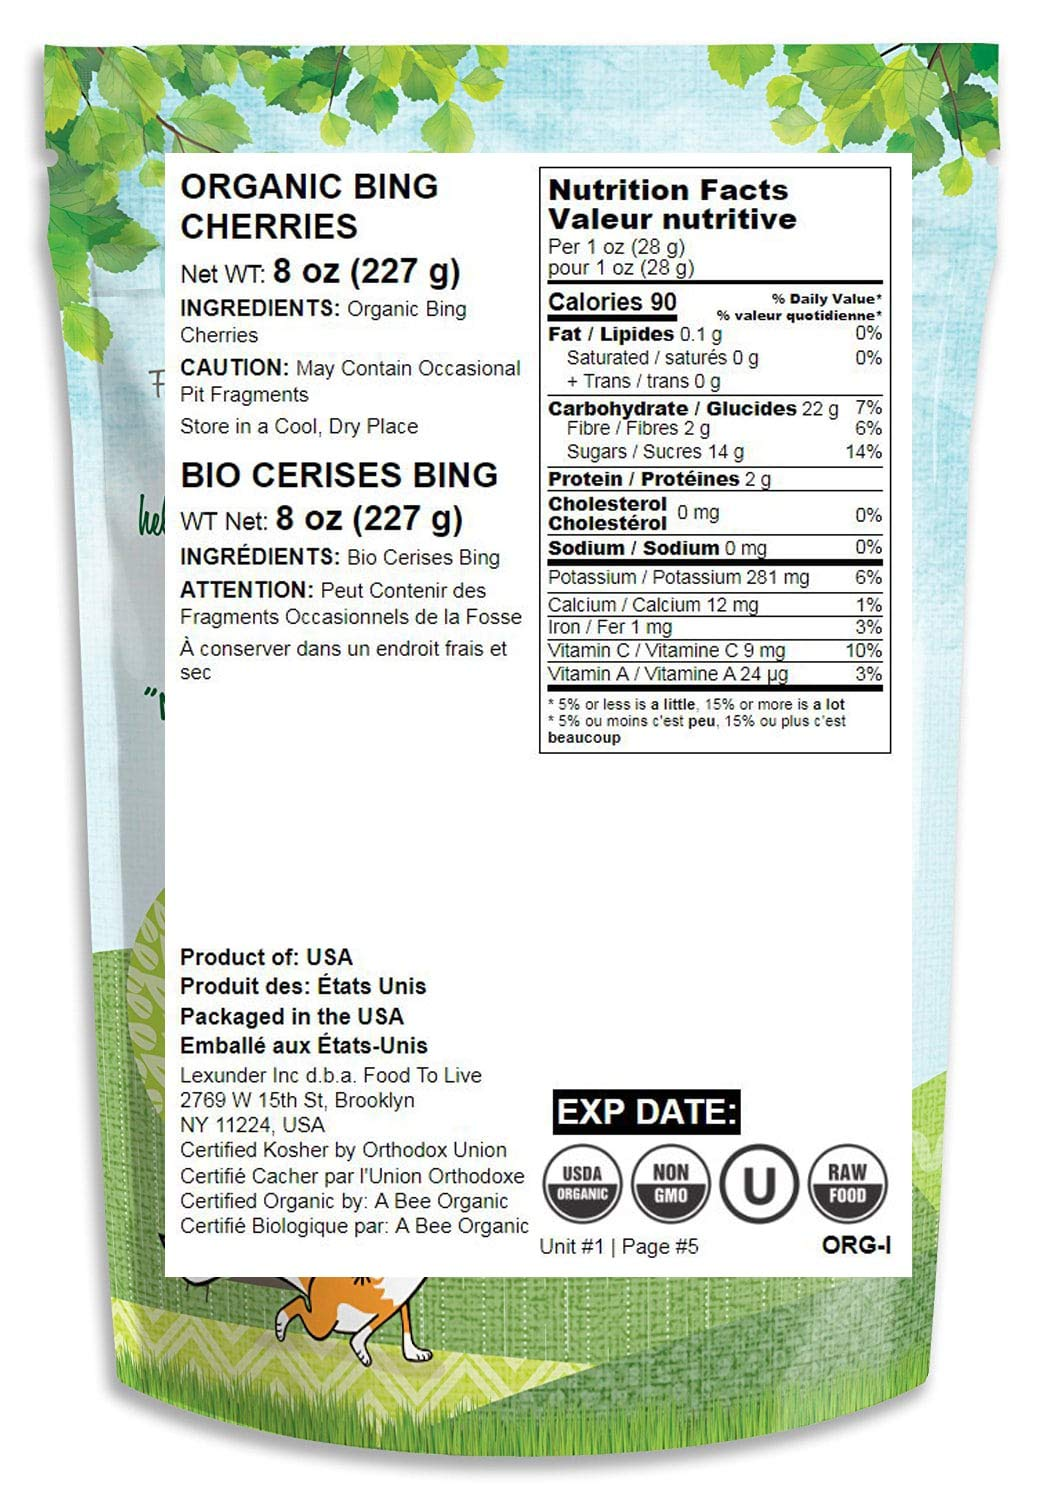 Organic Bing Cherries, 8 Ounces - California Sun-Dried Sour Cherries, Non-GMO, Kosher, Putted, Tart, Unsweetened, Unsulfured, Non-Infused, Non-Oil Added, Non-Irradiated, Vegan, Raw, Bulk by Food to Live (Image #1)